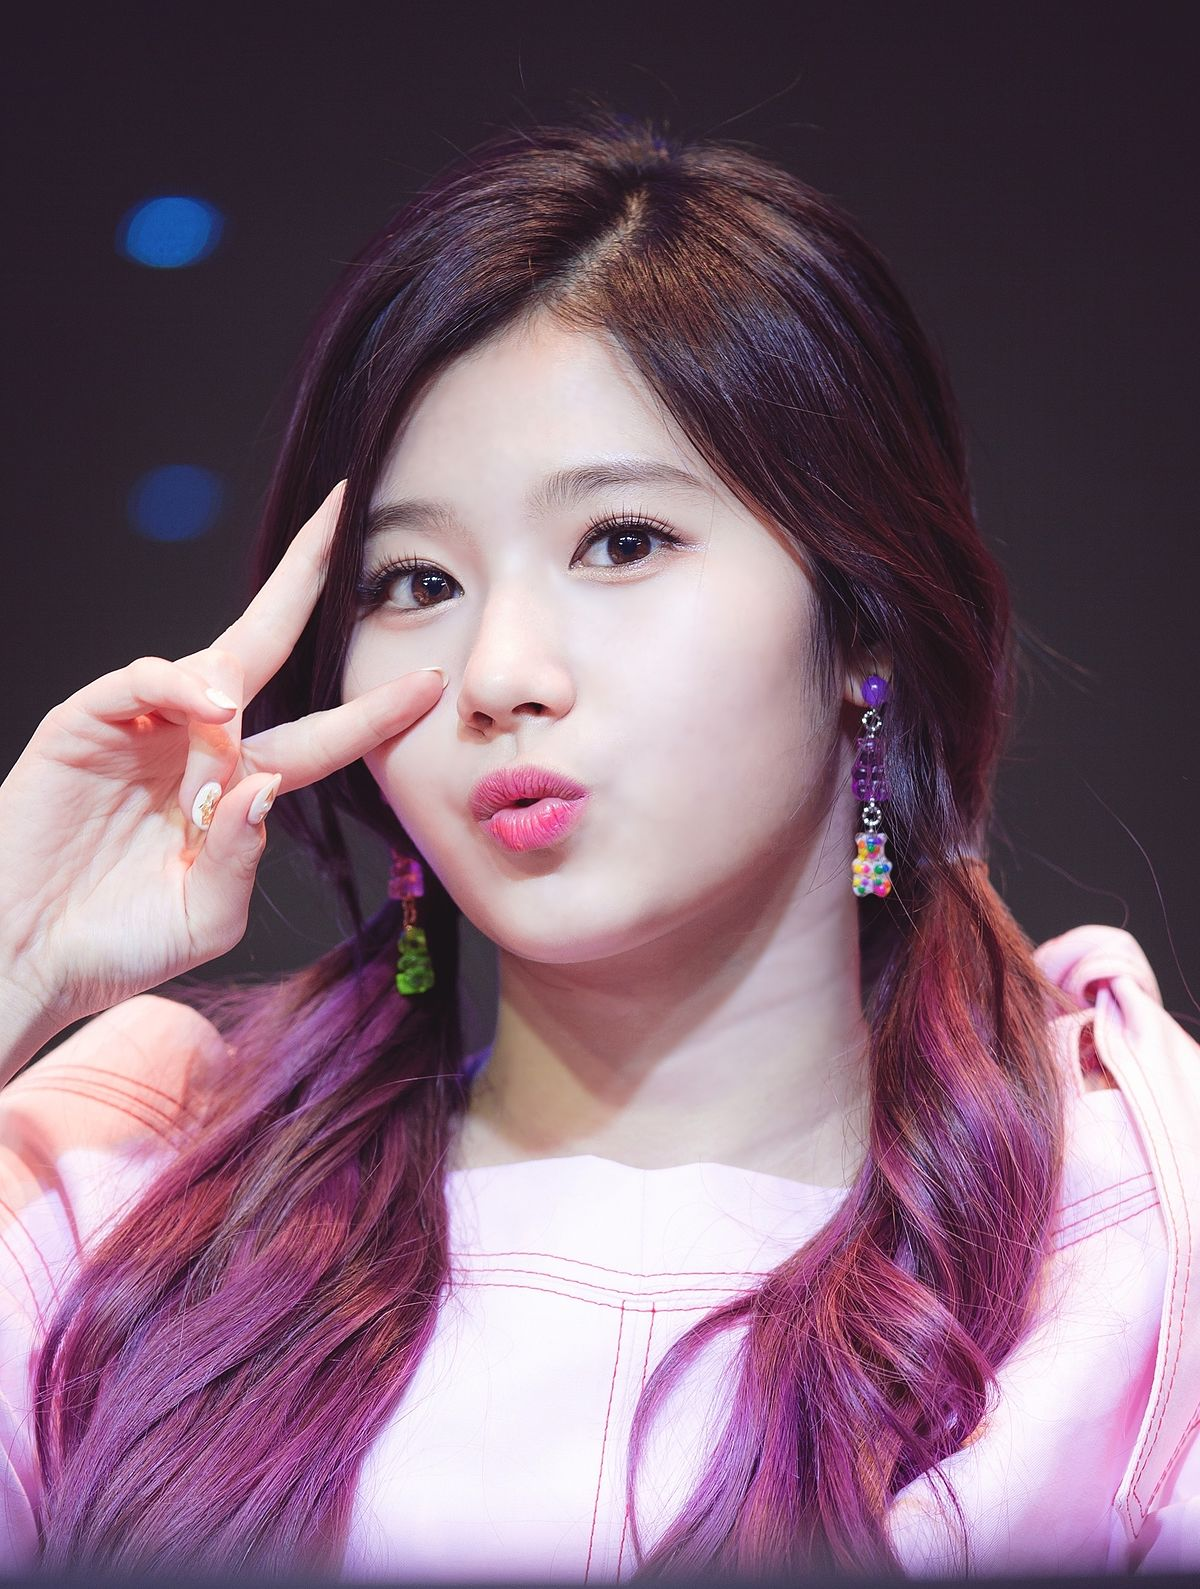 Cute Pc Wallpaper Sana Cantante Wikipedia La Enciclopedia Libre